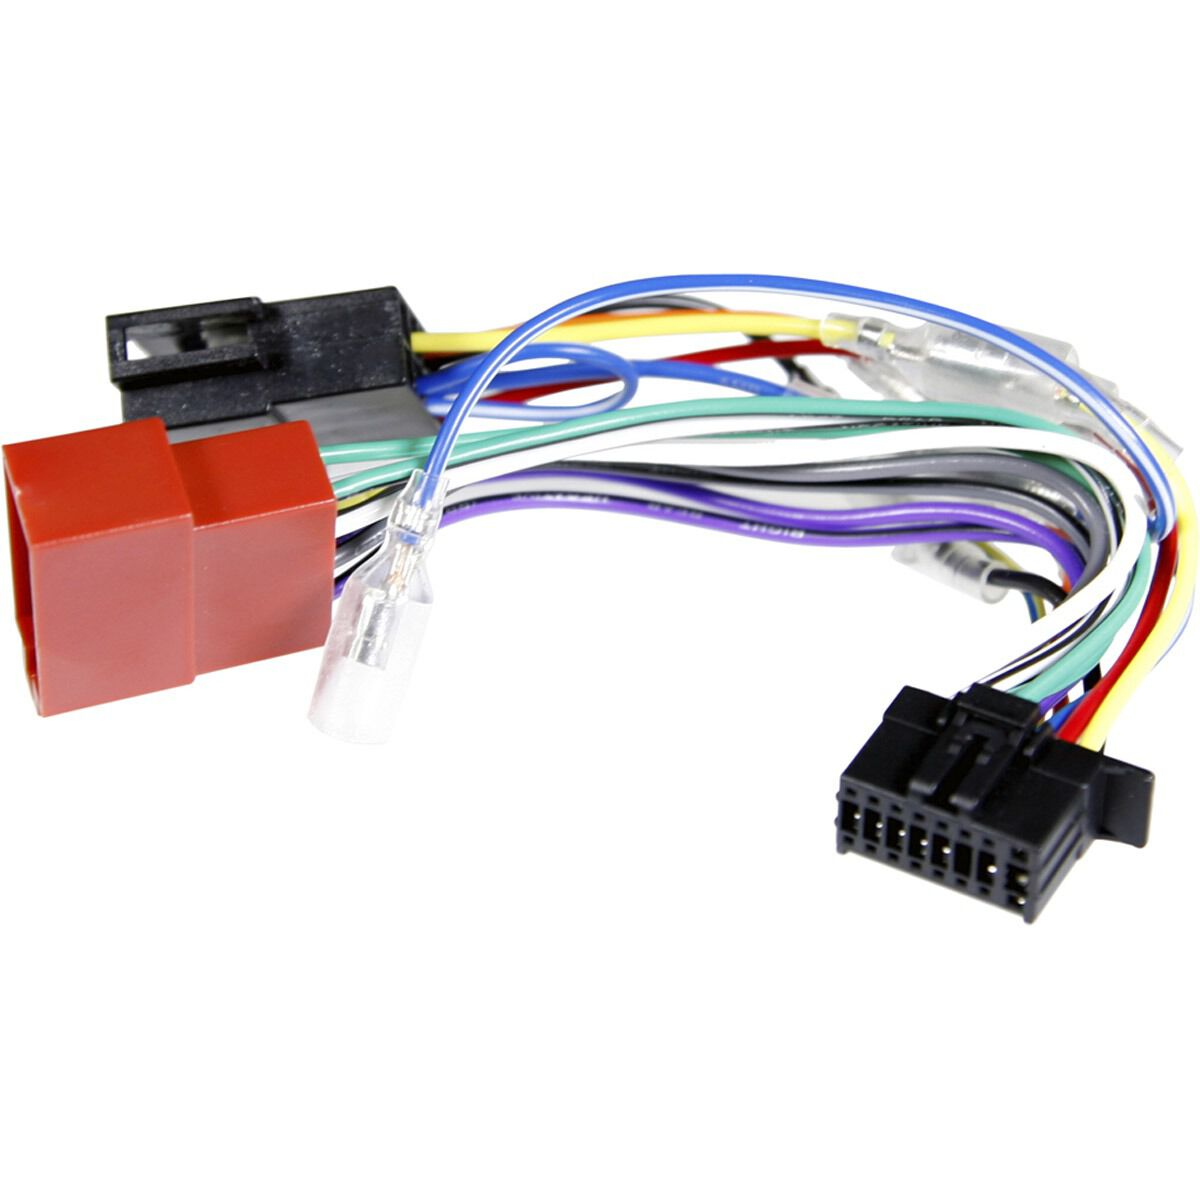 Hot Rod Wiring Kits Kit Solutions Harness On 1000x1000